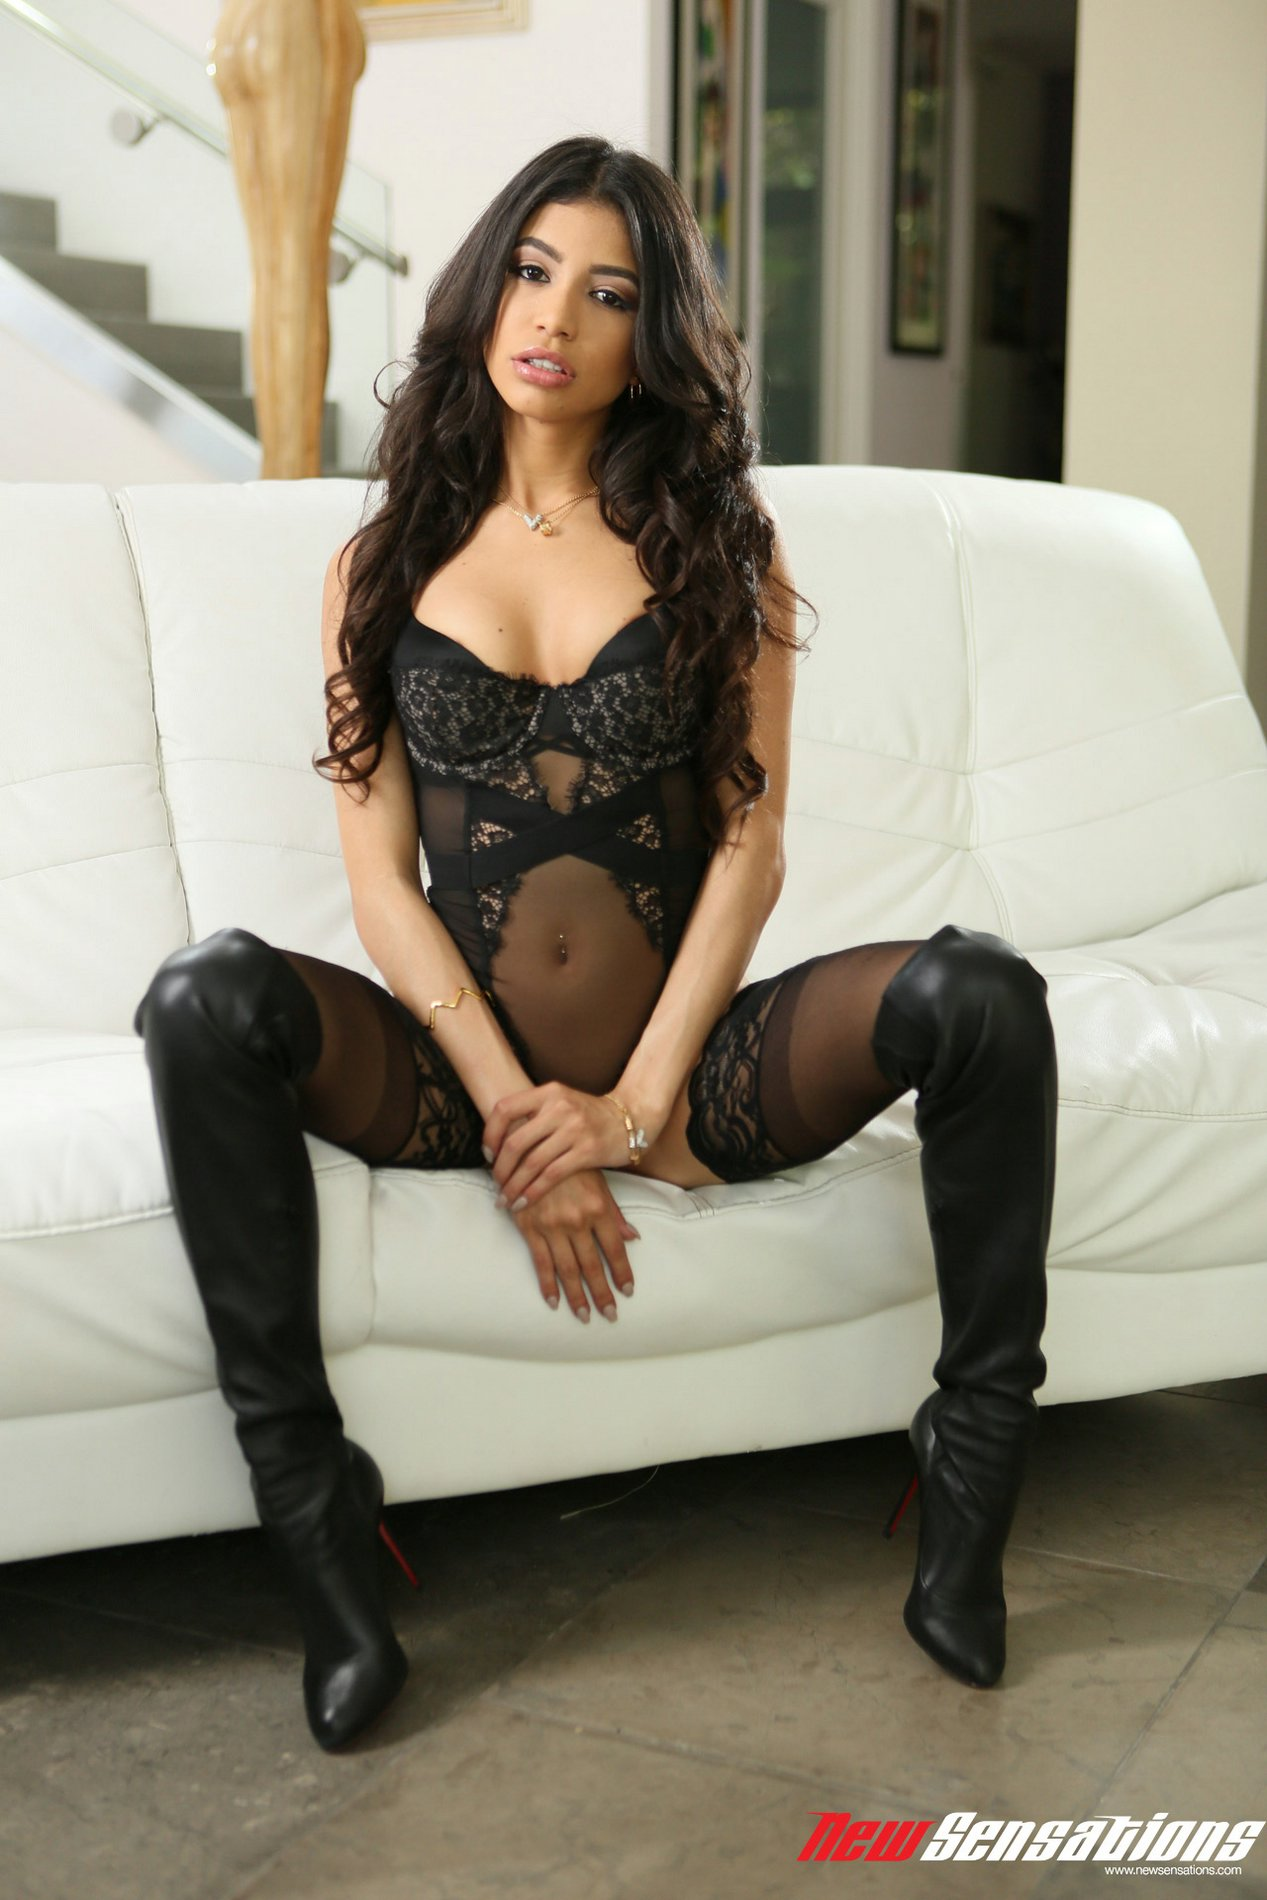 Veronica Rodriguez in black stockings and high boots poses for camera.